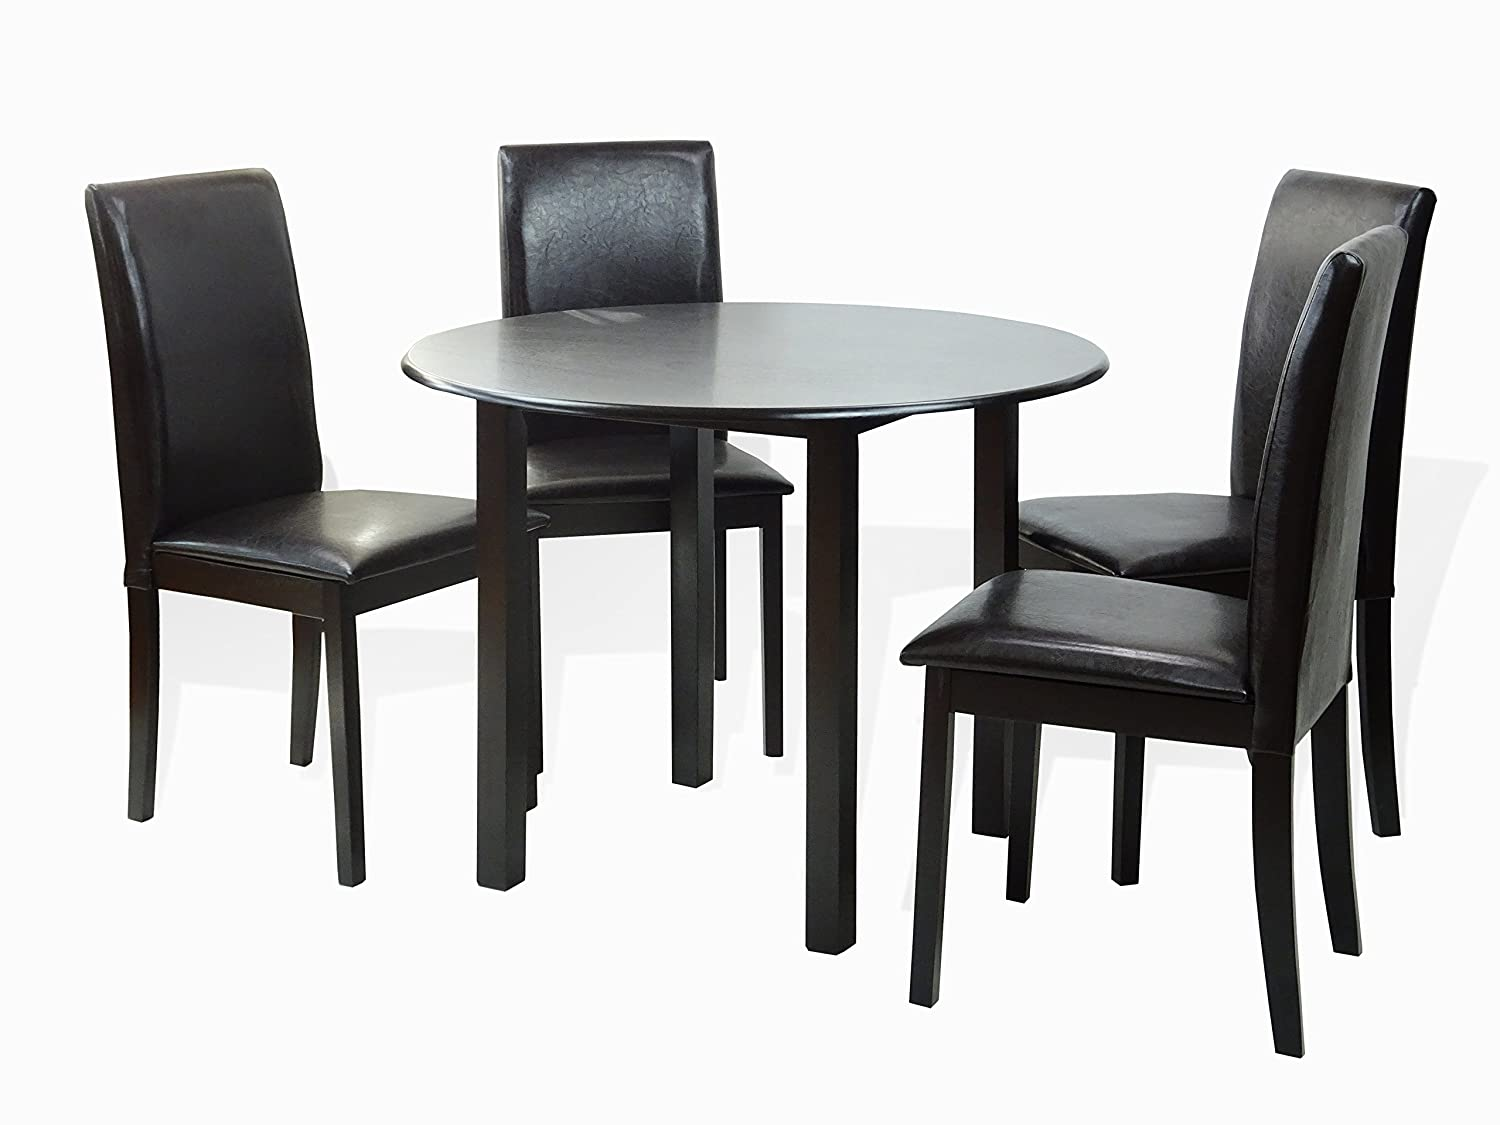 SunBear Furniture Dining Kitchen Set of 5 Piece Round Table and 4 Classic Solid Wood Chairs Fallabella, Espresso